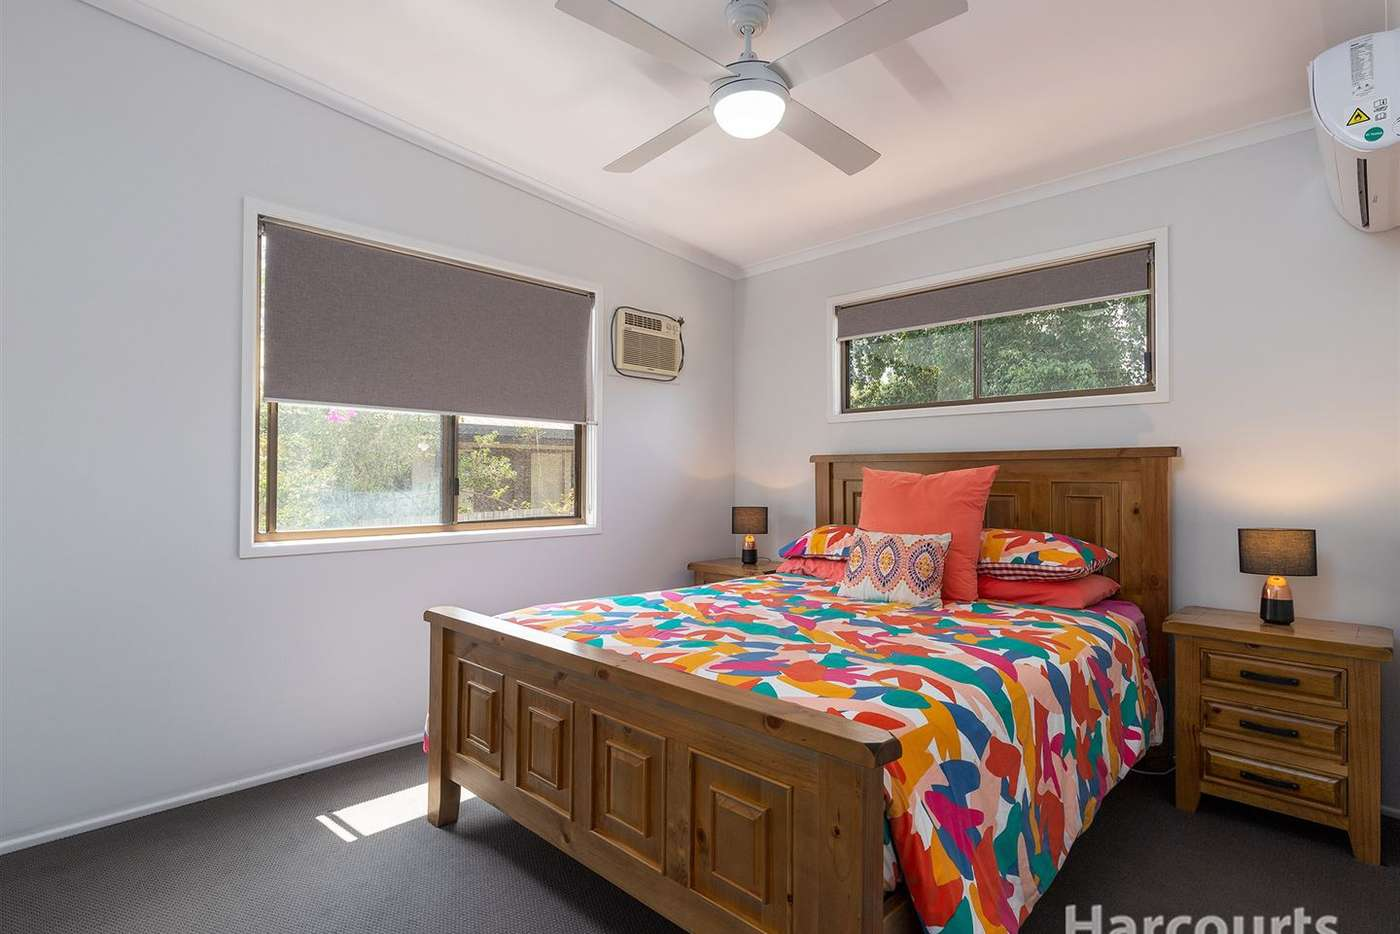 Seventh view of Homely house listing, 4 Elgata St, Petrie QLD 4502